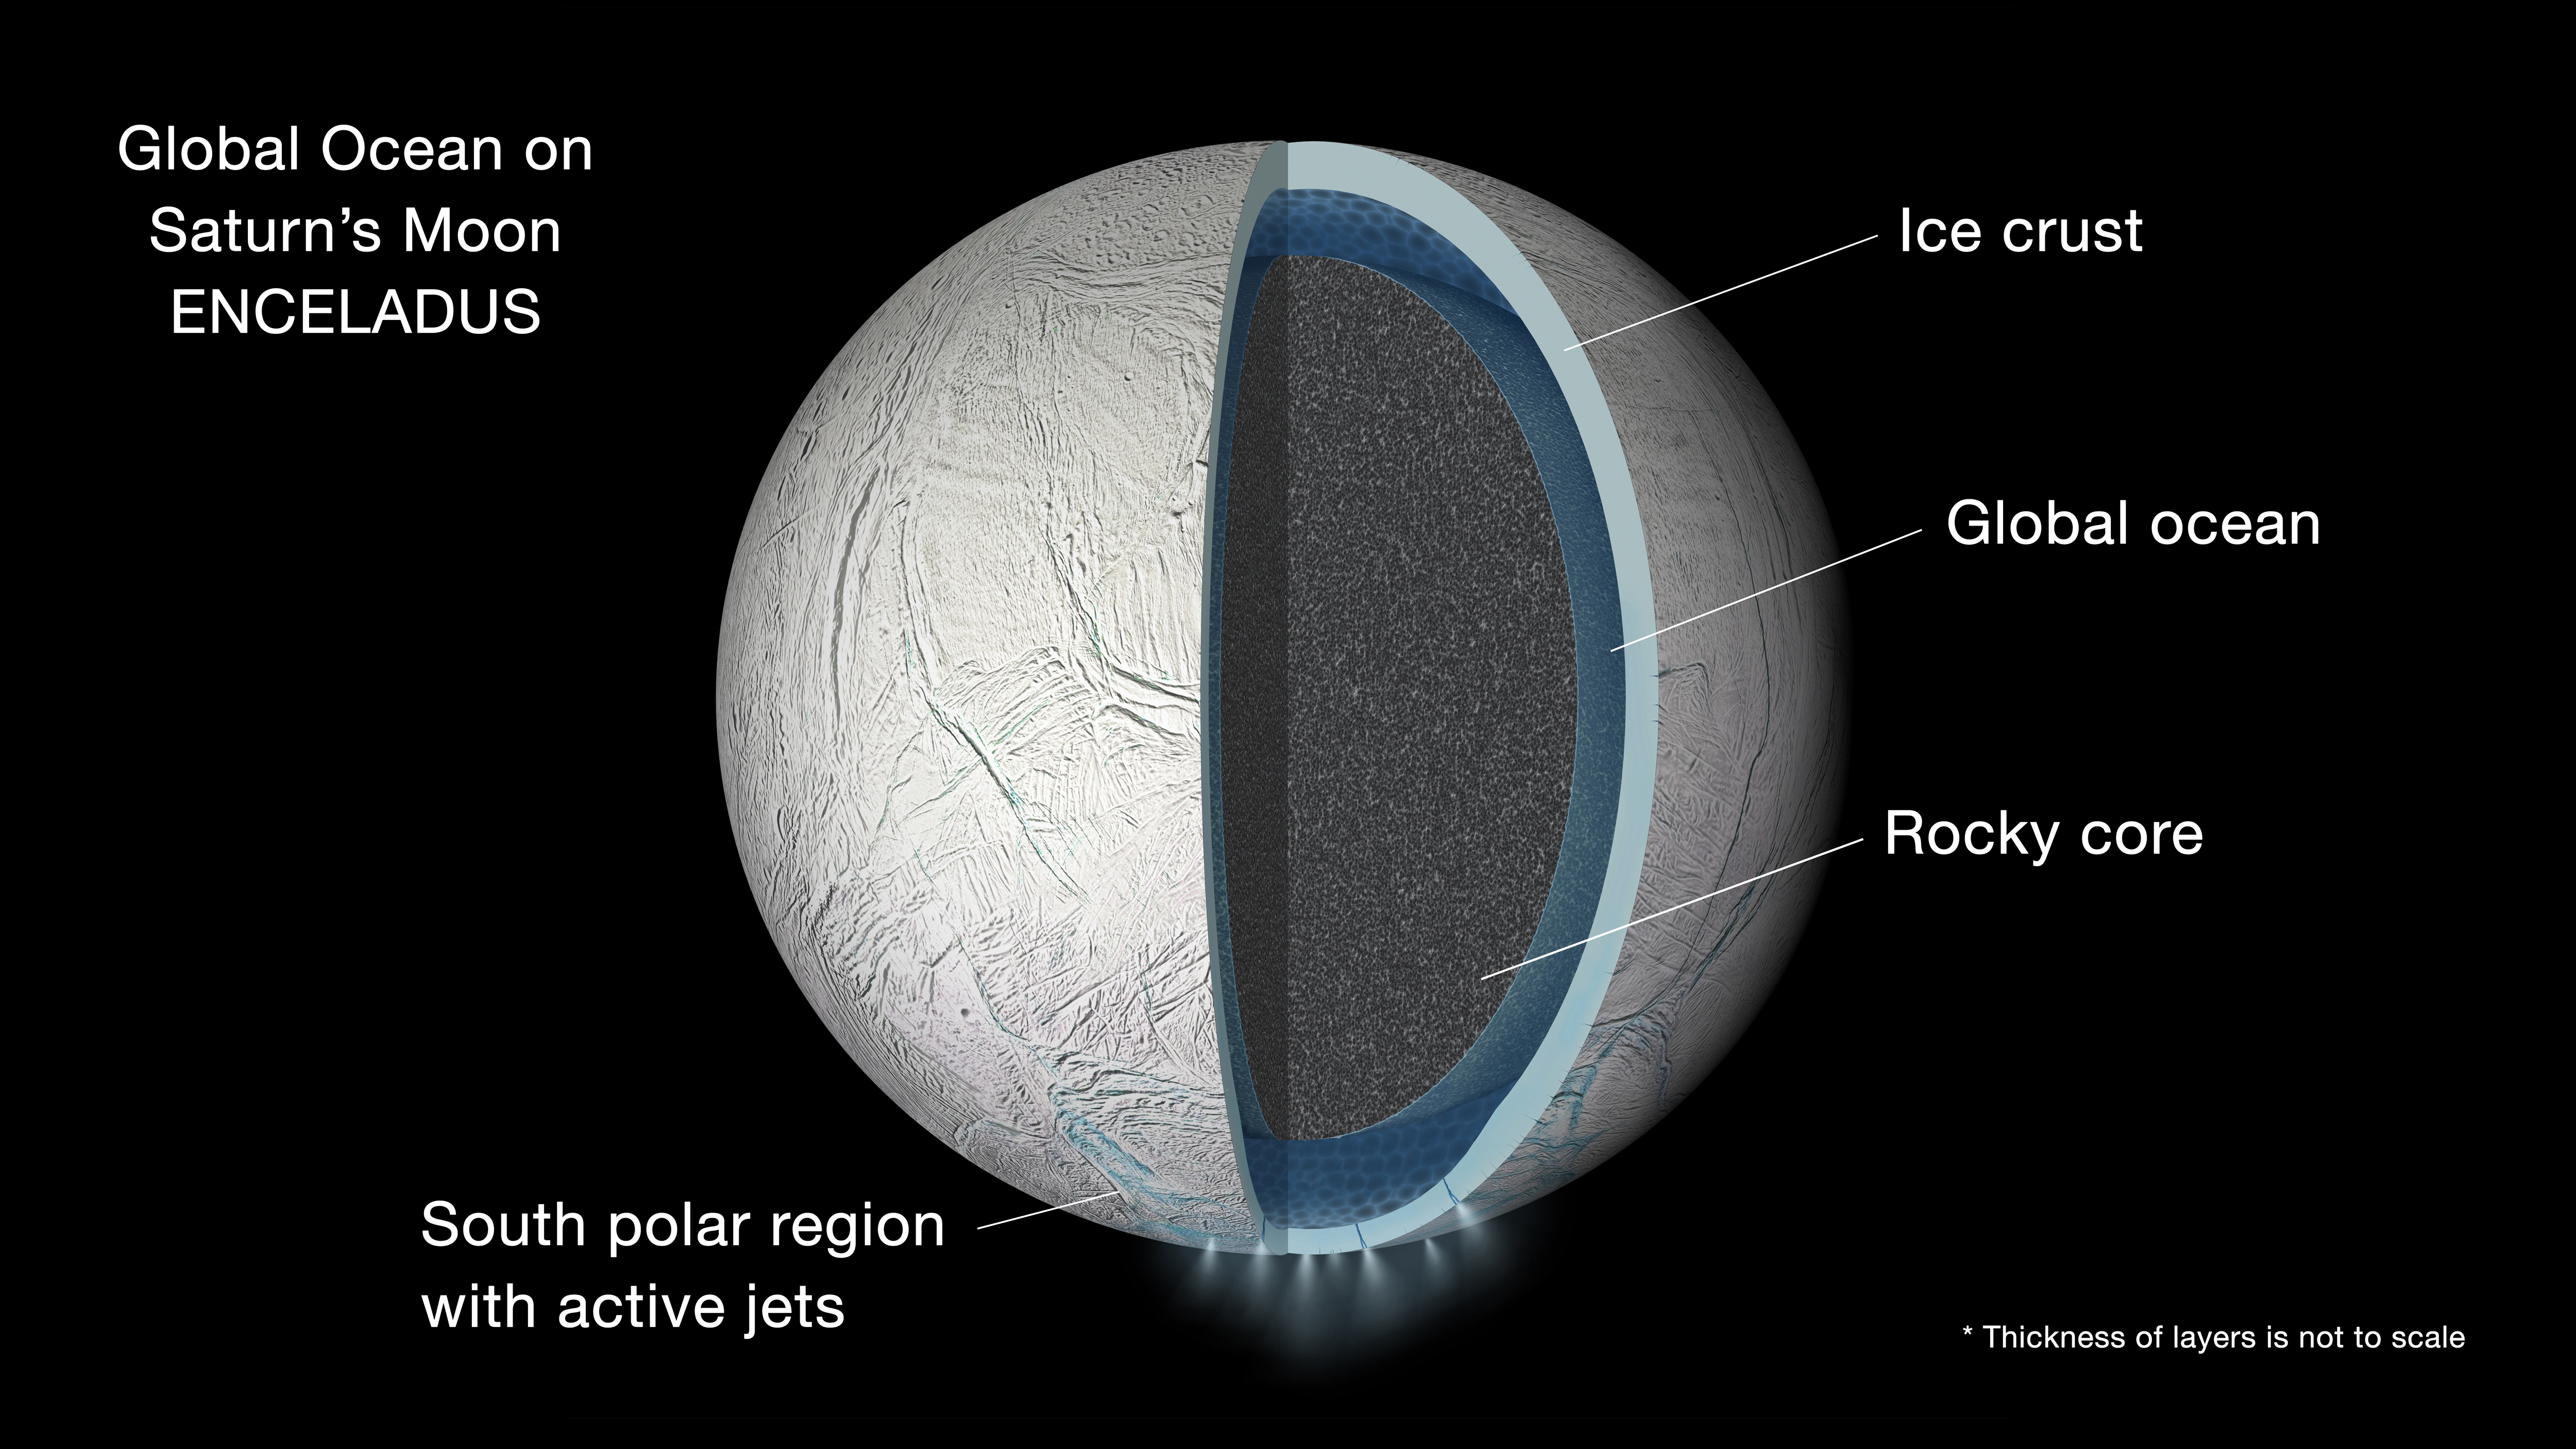 Saturn's moon Enceladus global ocean model